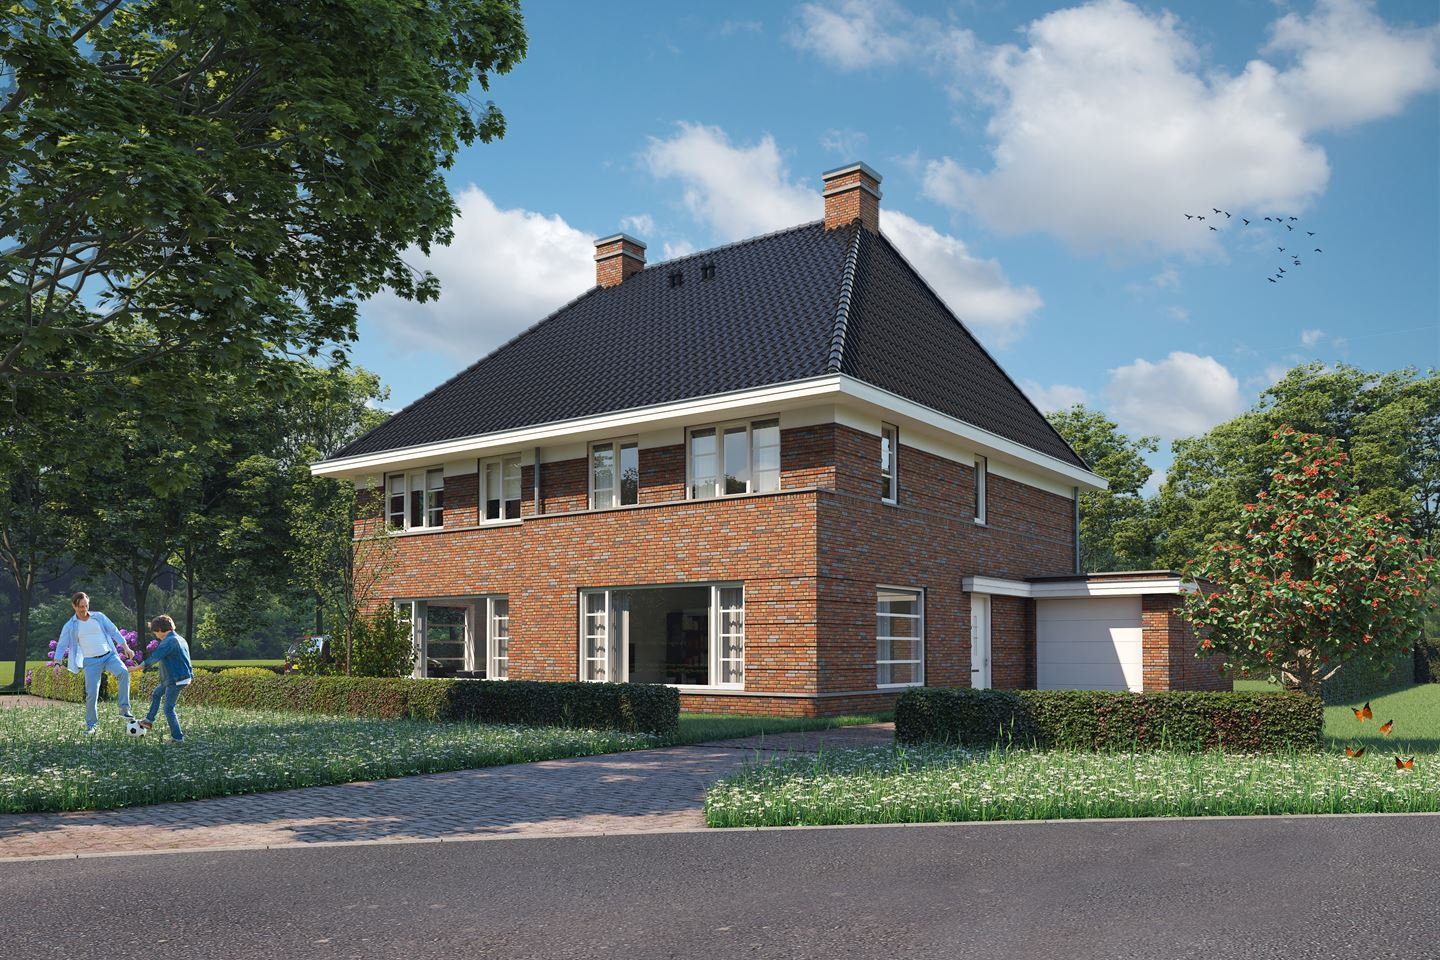 View photo 1 of Esserdael diepe villa bnr. 21 (Bouwnr. 21)